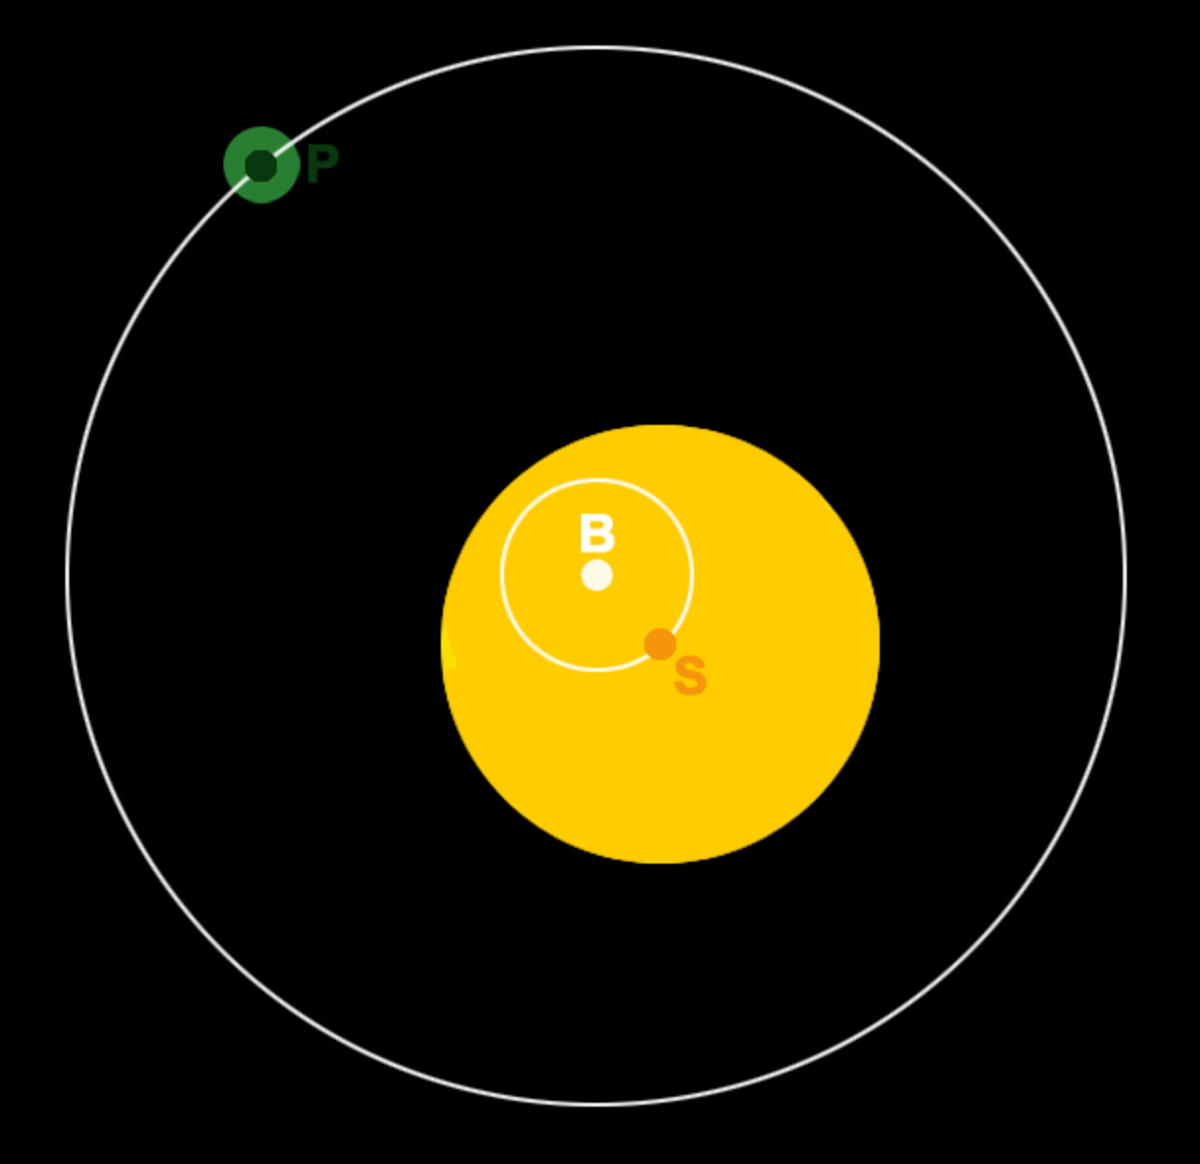 The barycentric view of a planet orbiting a host star. The planet's centre of mass (P) and the star's centre of mass (S) both orbit a common barycentre (B). Hence, the star wobbles due to the presence of the orbiting planet.